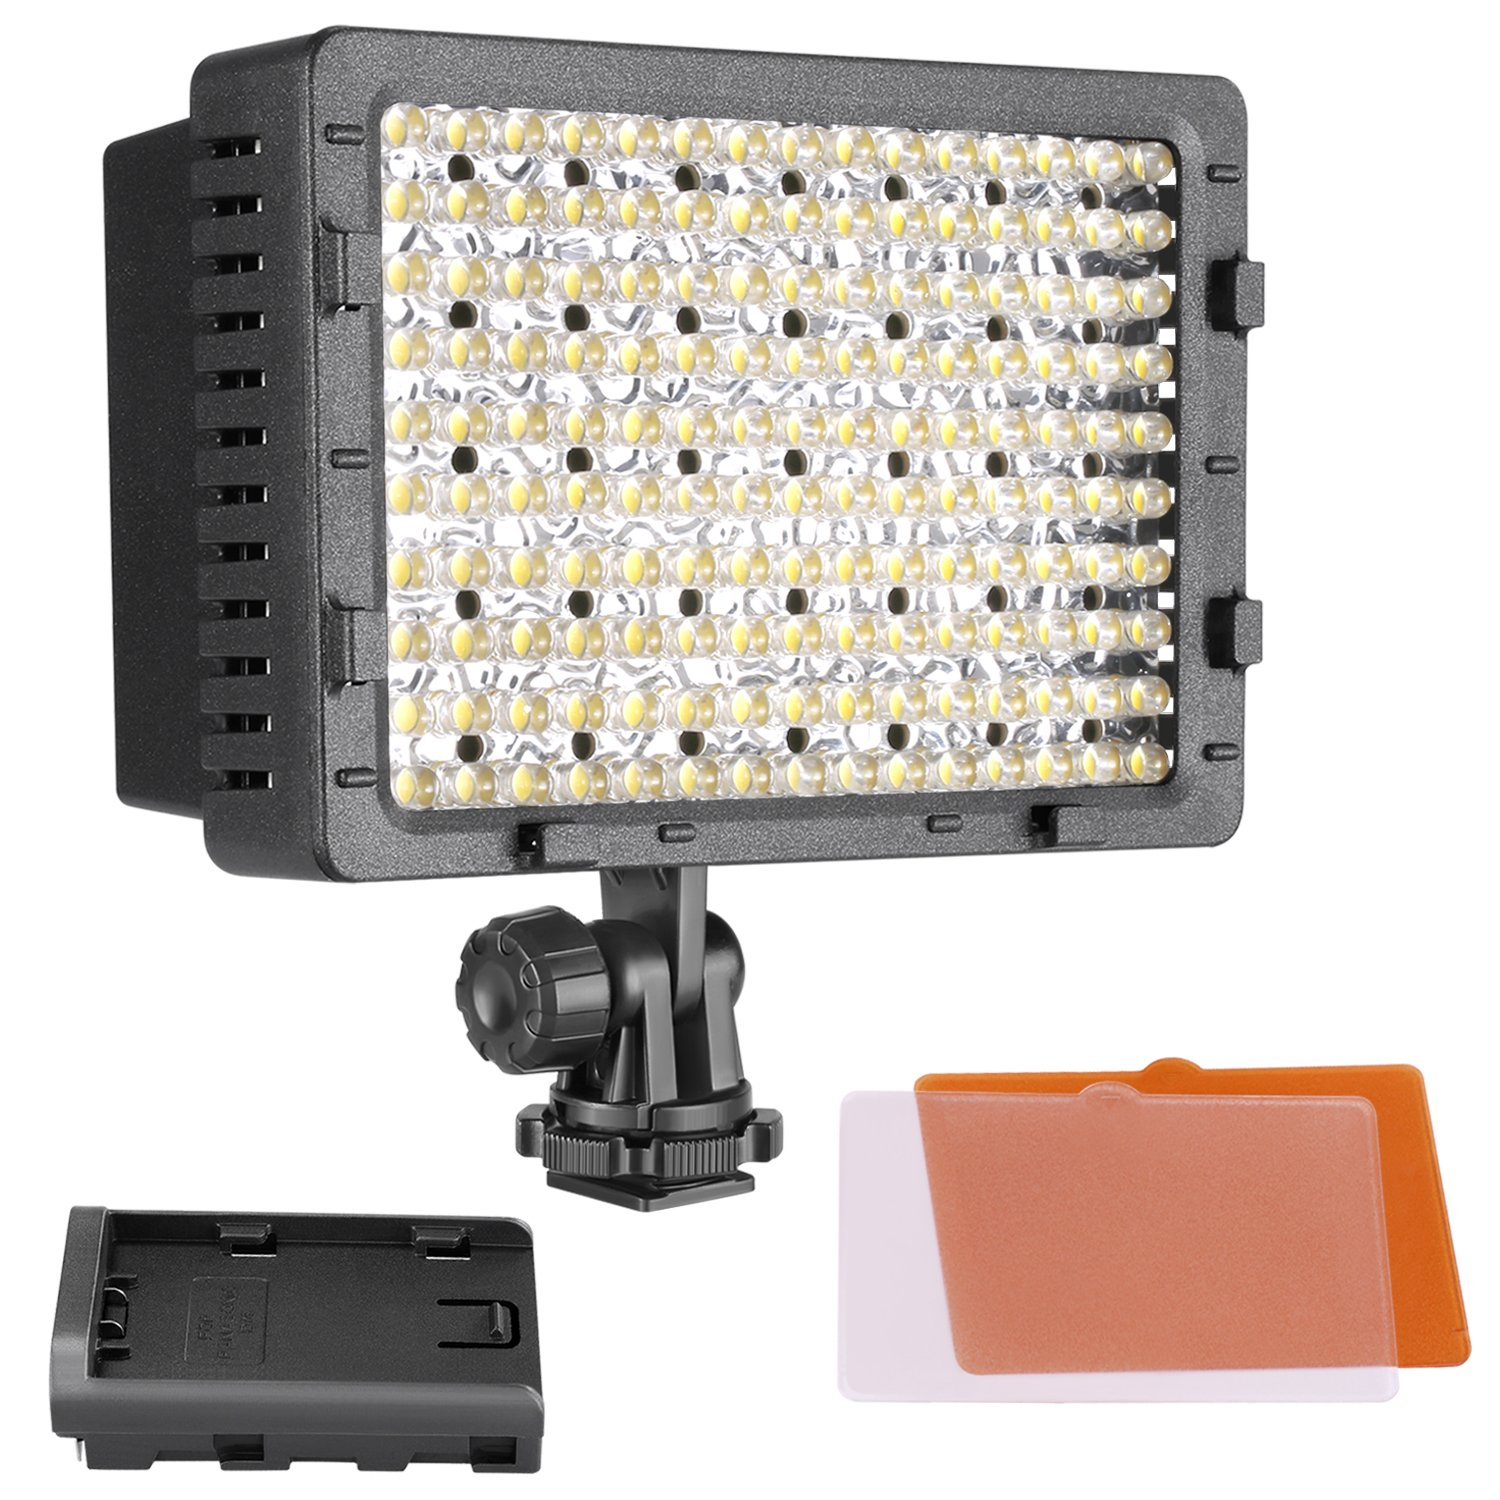 NEEWER 3-Pack 160 LED CN-160 Dimmable Ultra High Power Panel Digital Camera/Camcorder Video Light, LED Light for Canon, Nikon, Pentax, Panasonic,SONY, Samsung and Olympus Digital SLR Cameras